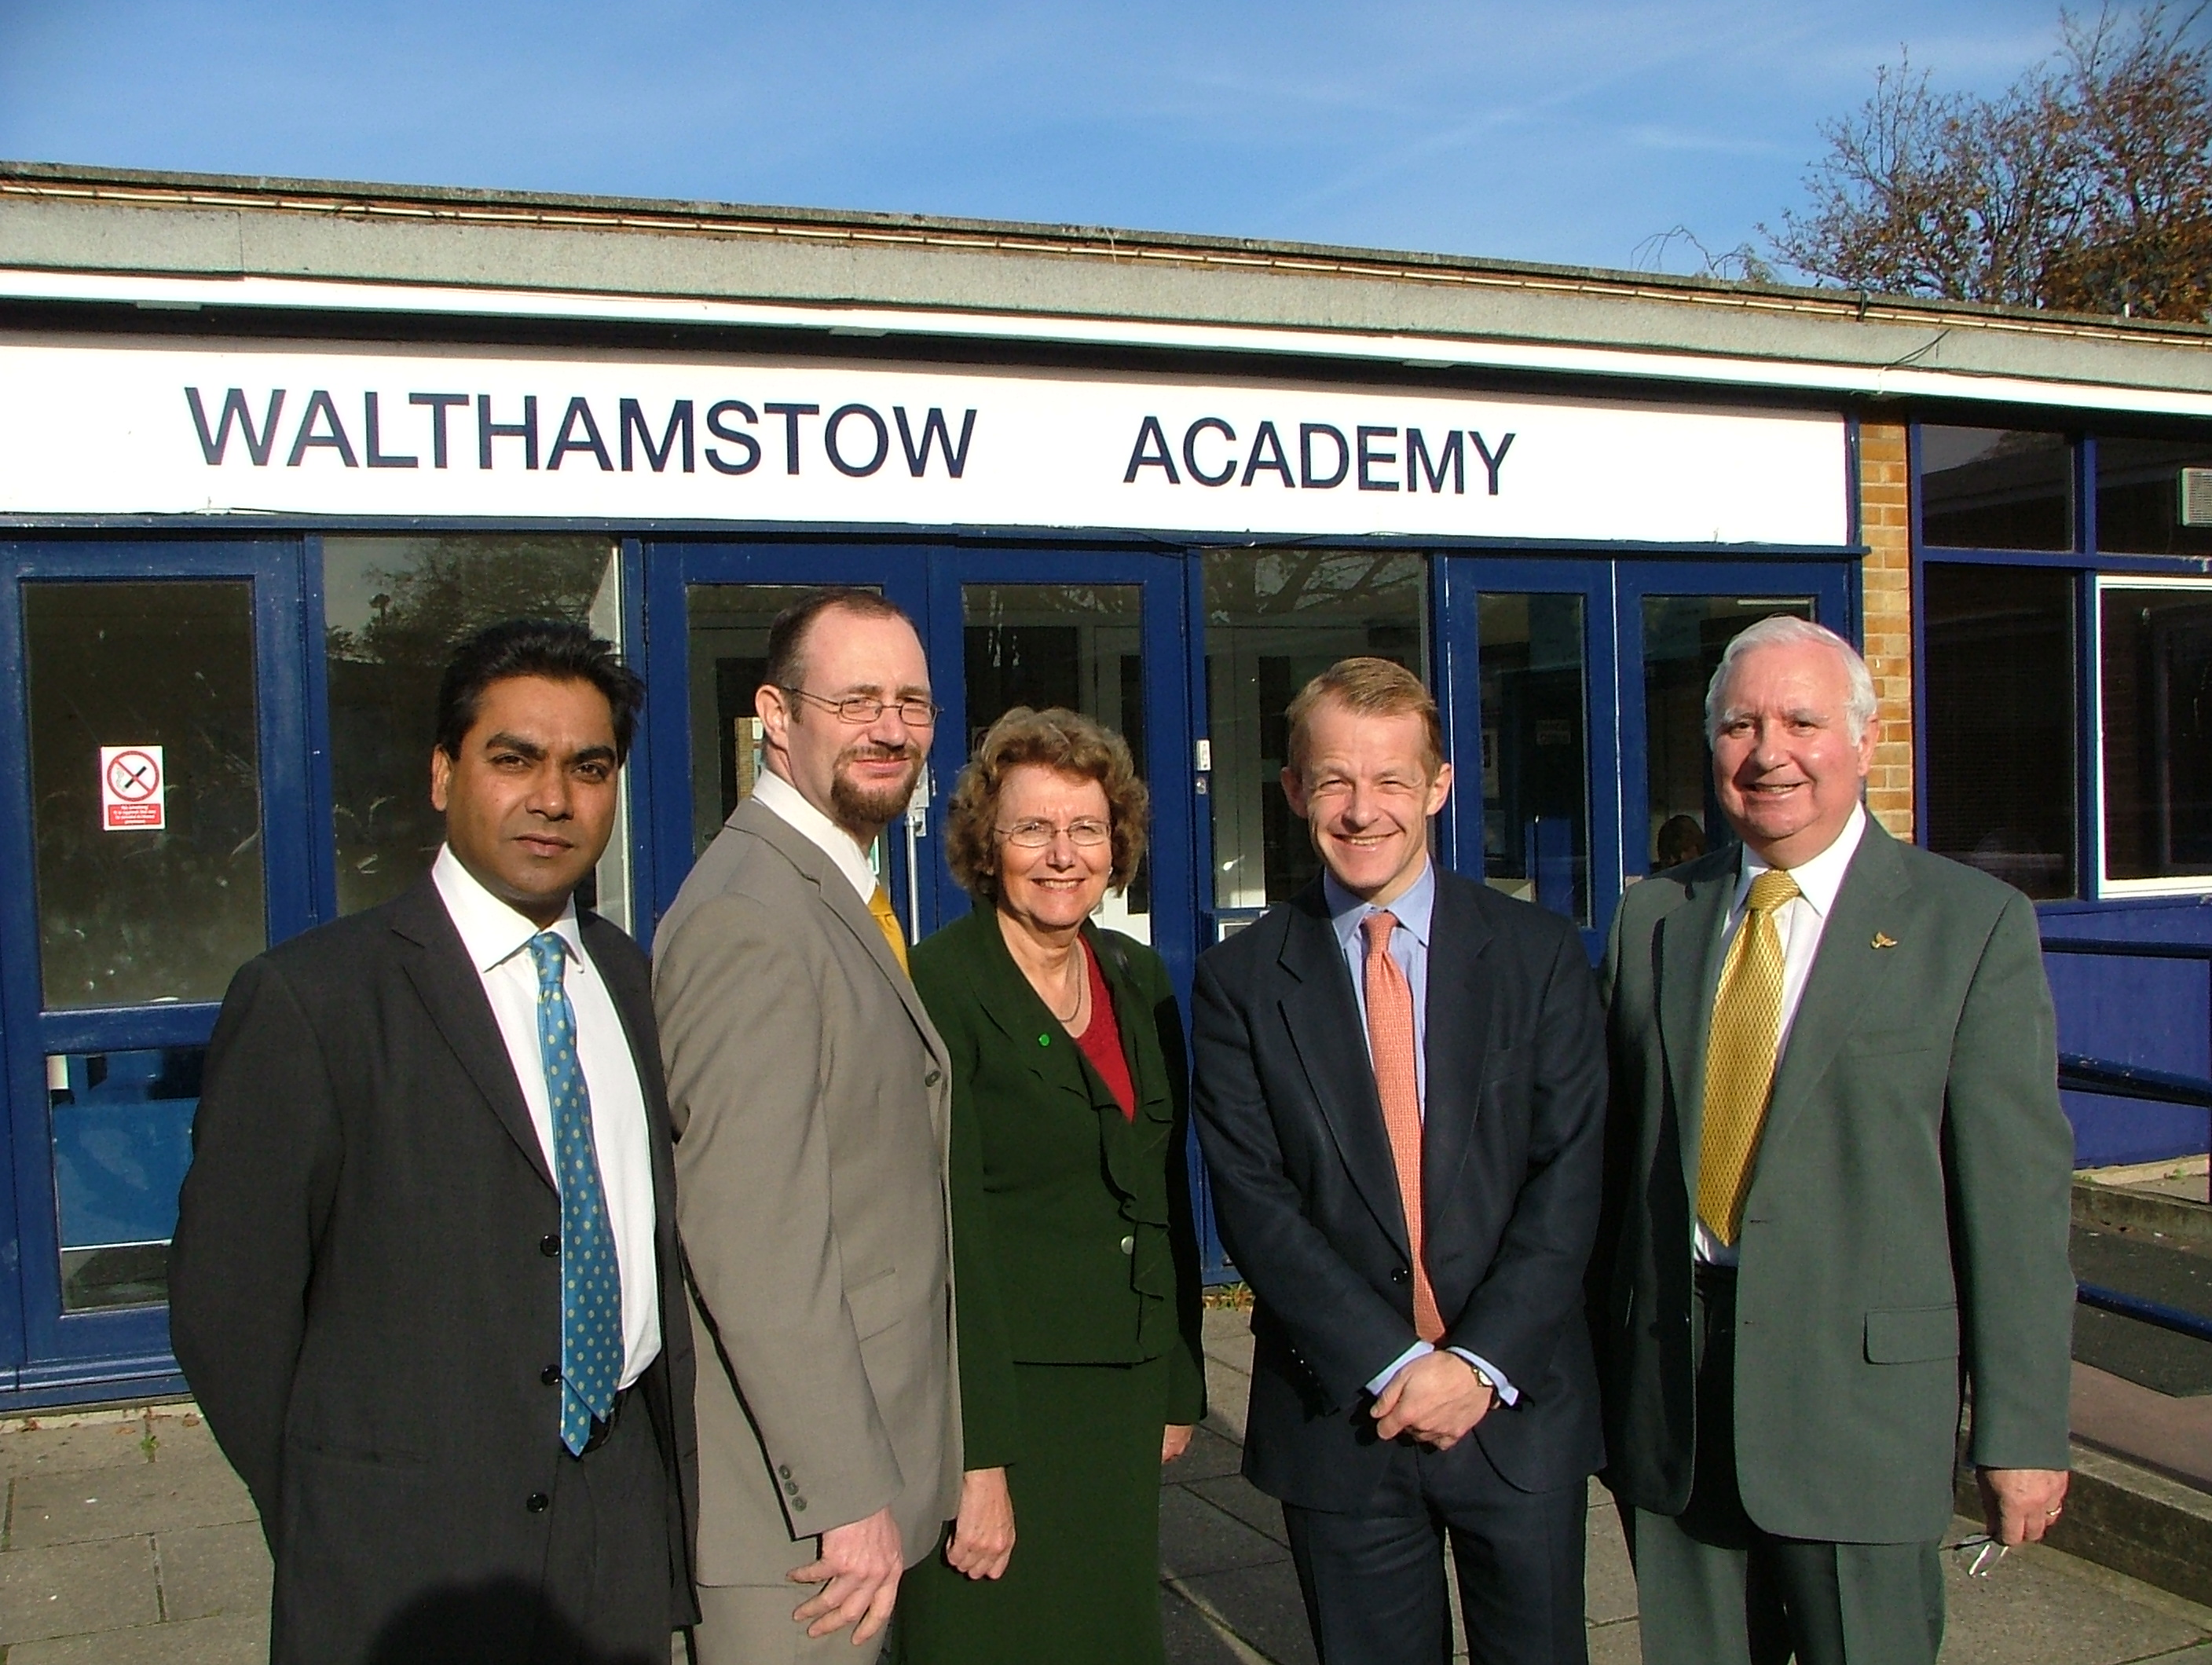 (l-r) Farid Ahmed, Cllr Sean Meiszner, David Laws MP, Annette Brooke MP and Cllr Peter Woollcott